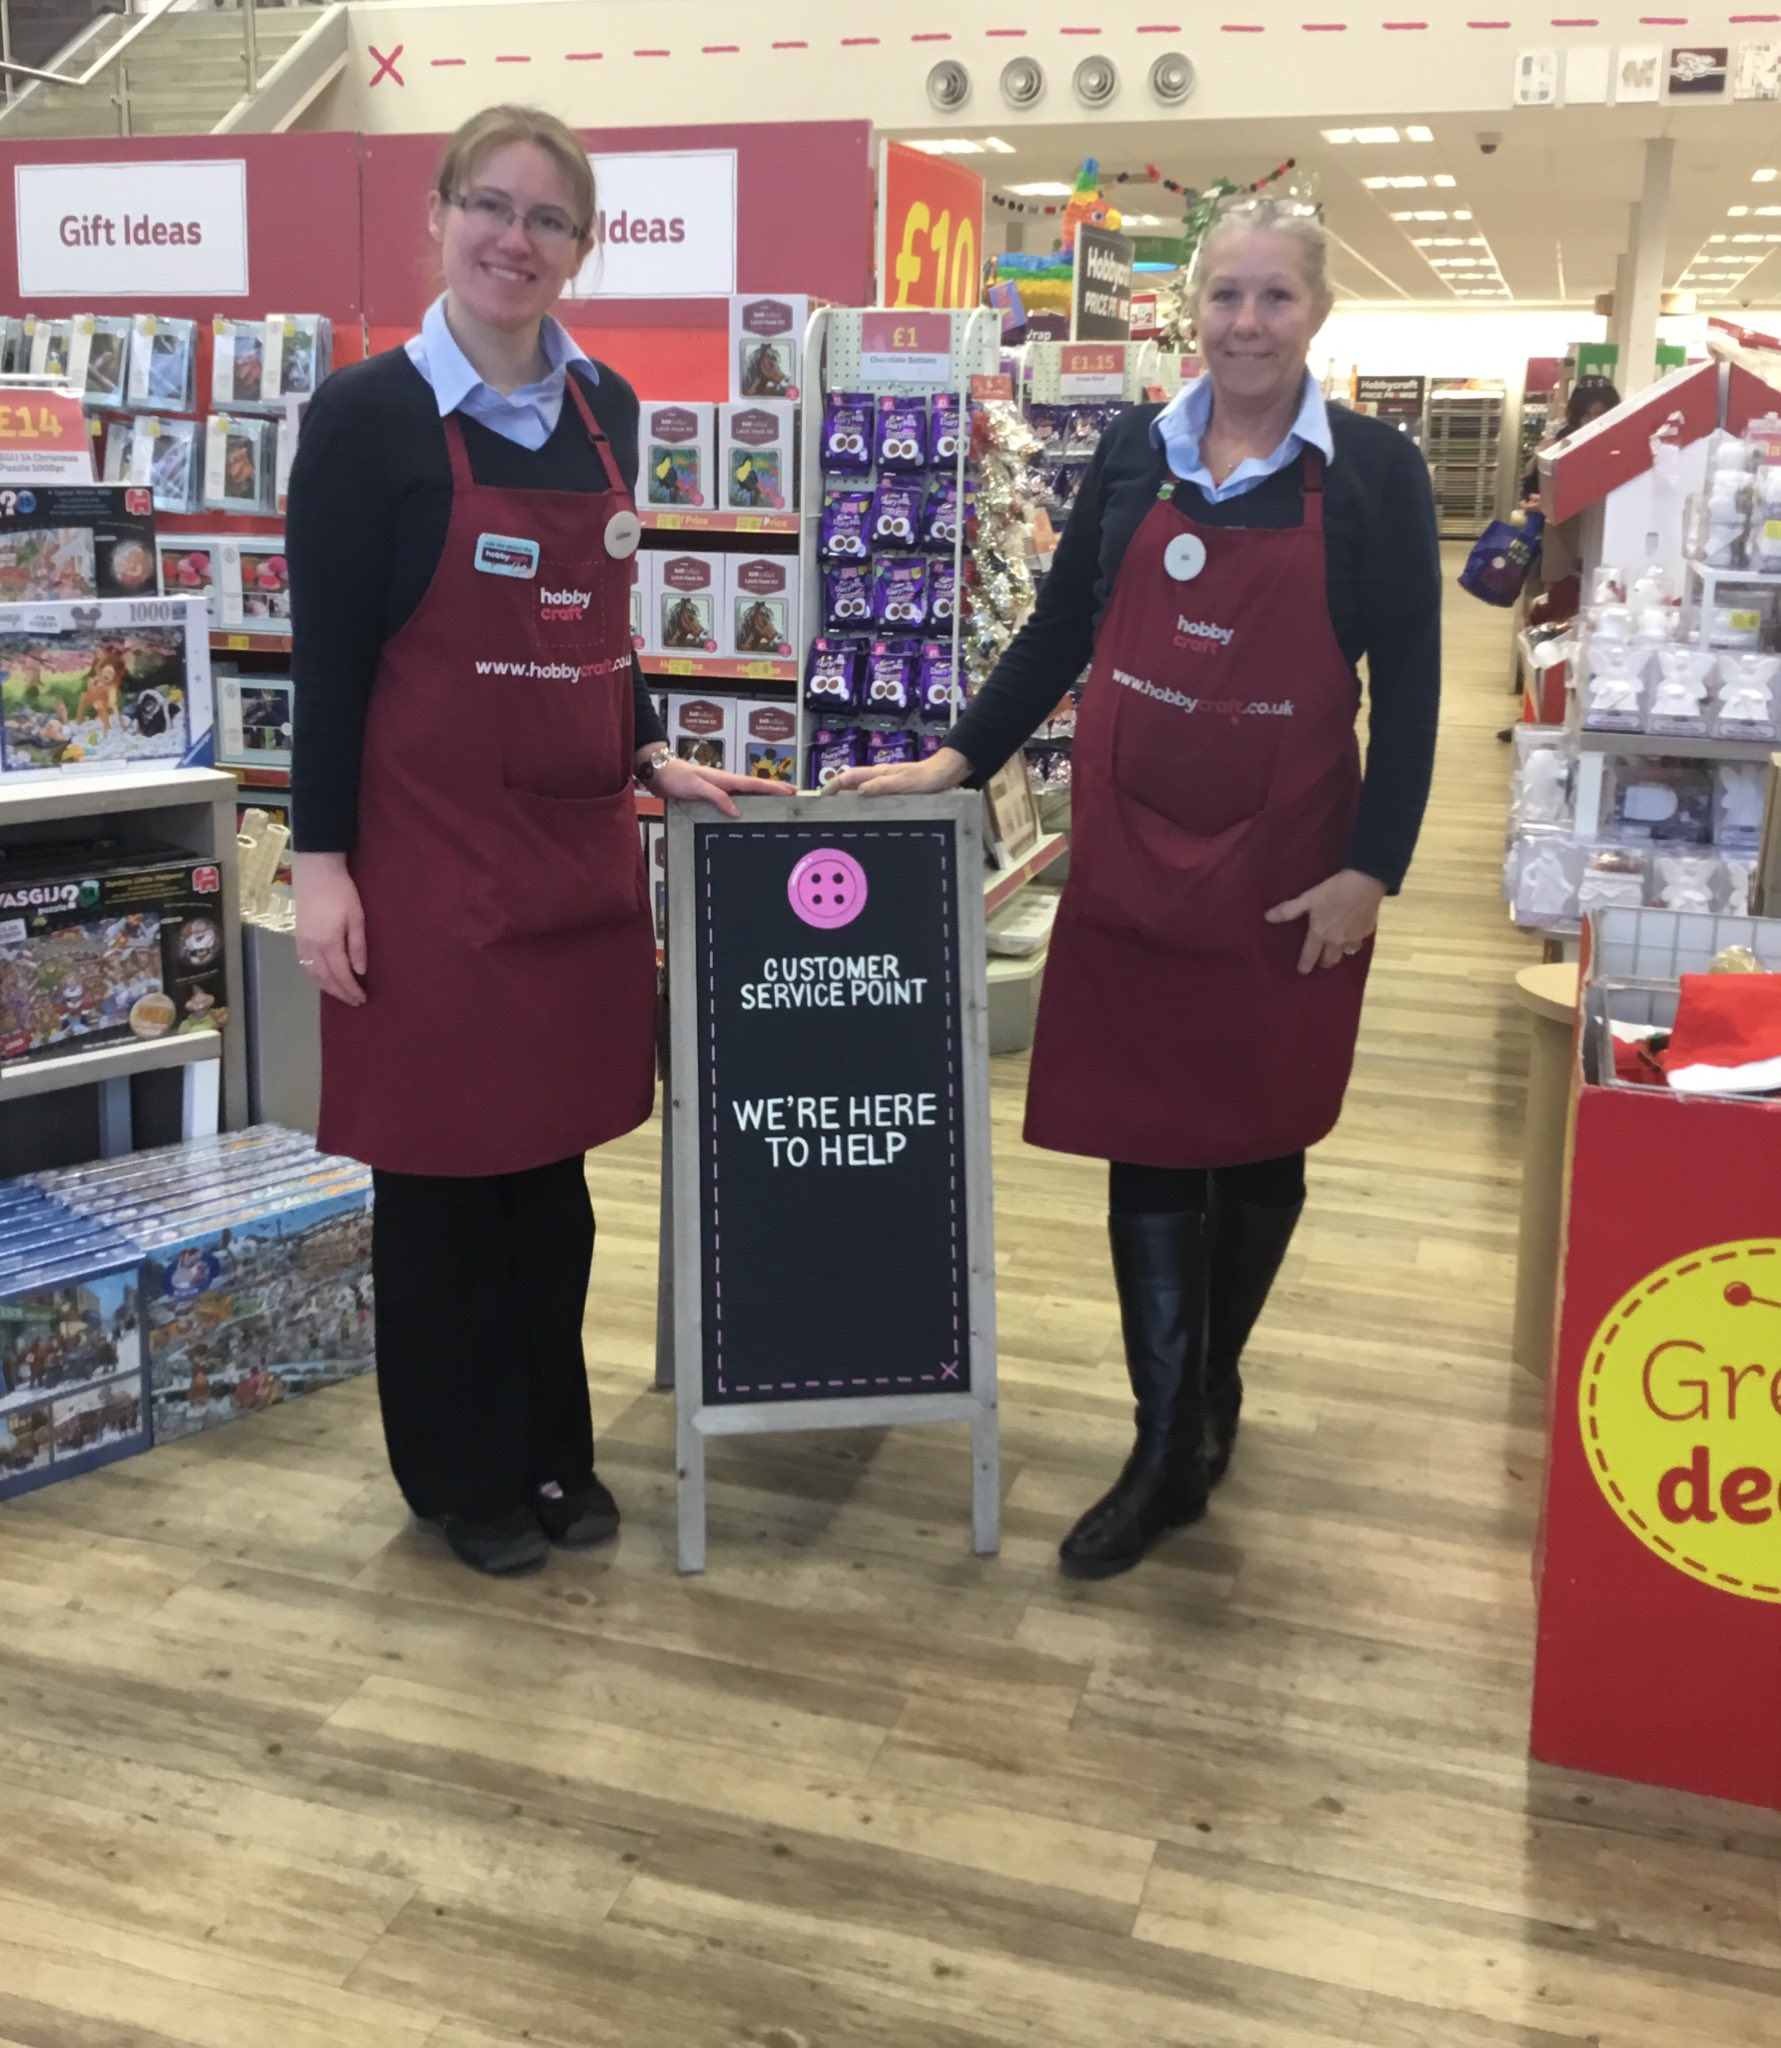 Hobbycraft Cambridge On Twitter Ali And Lillian Are Always Here To